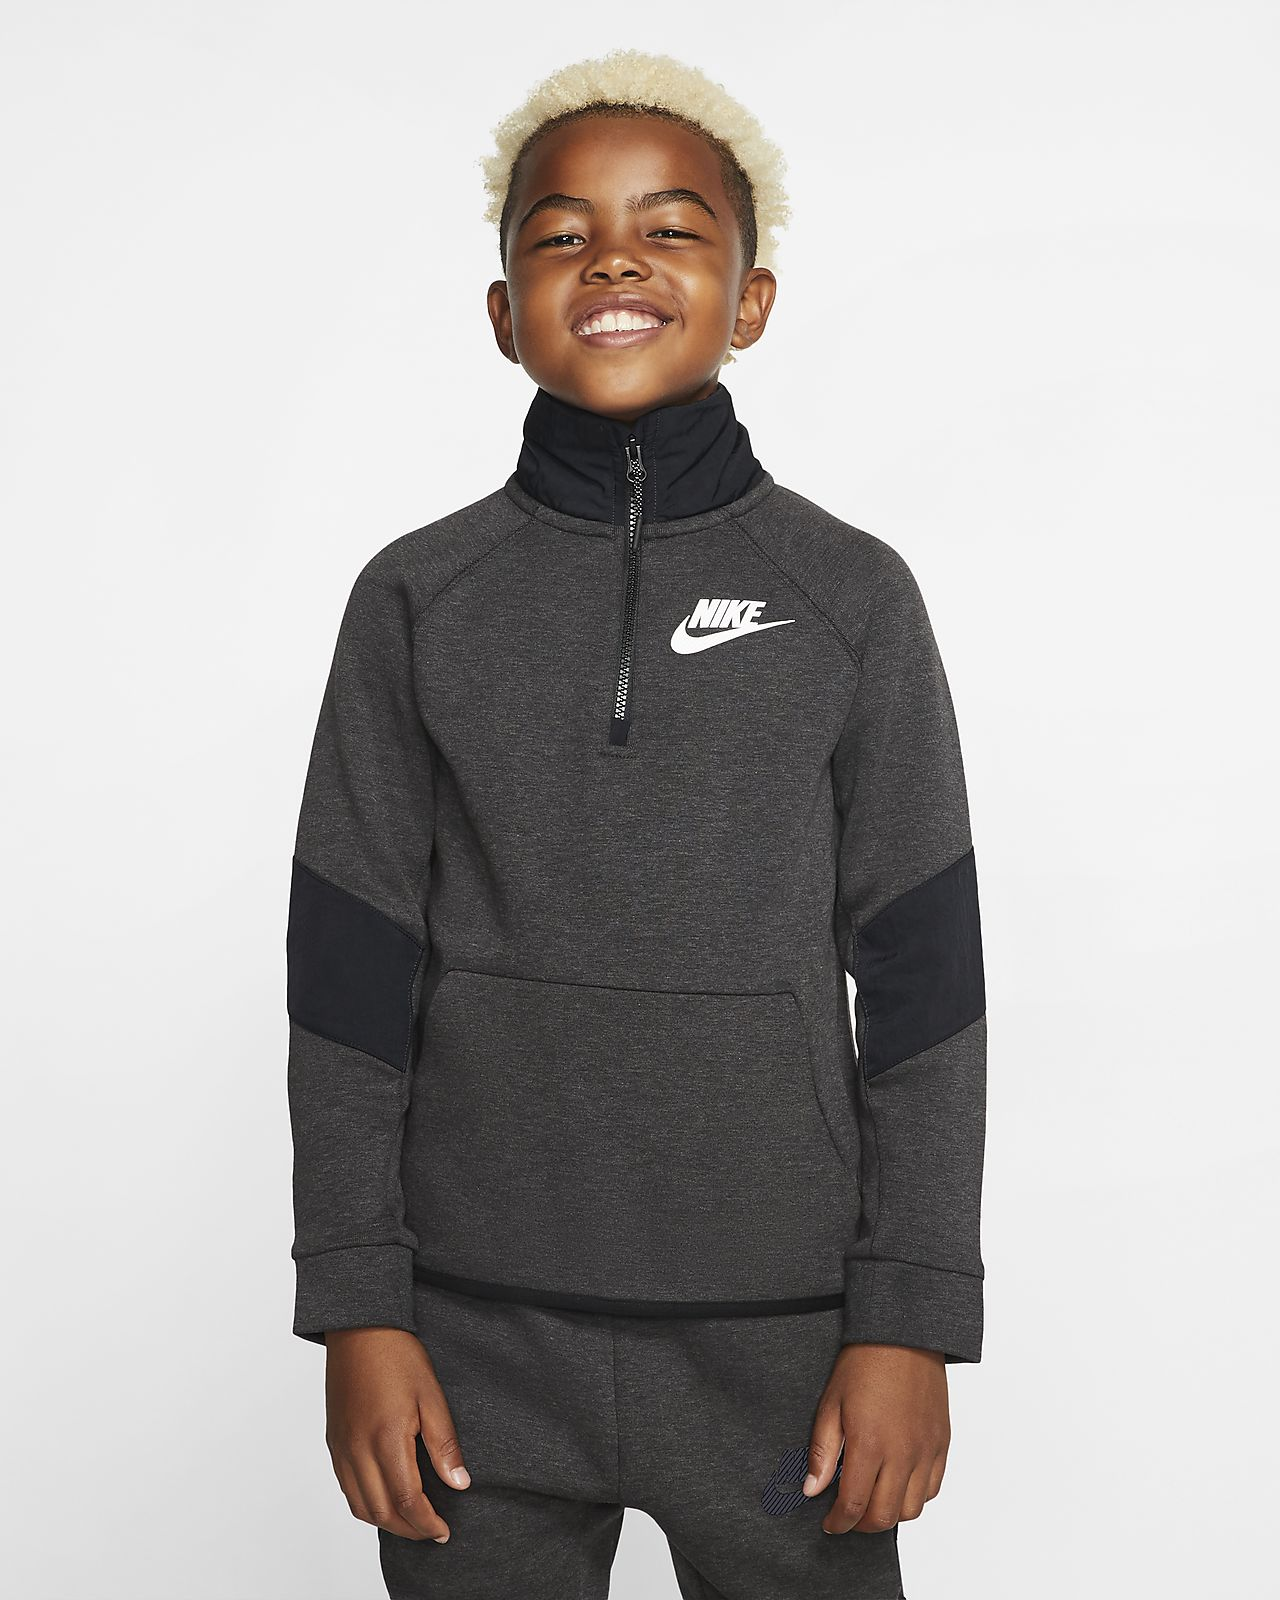 Nike Sportswear Winterized Tech Fleece Older Kids' Long-Sleeve Top